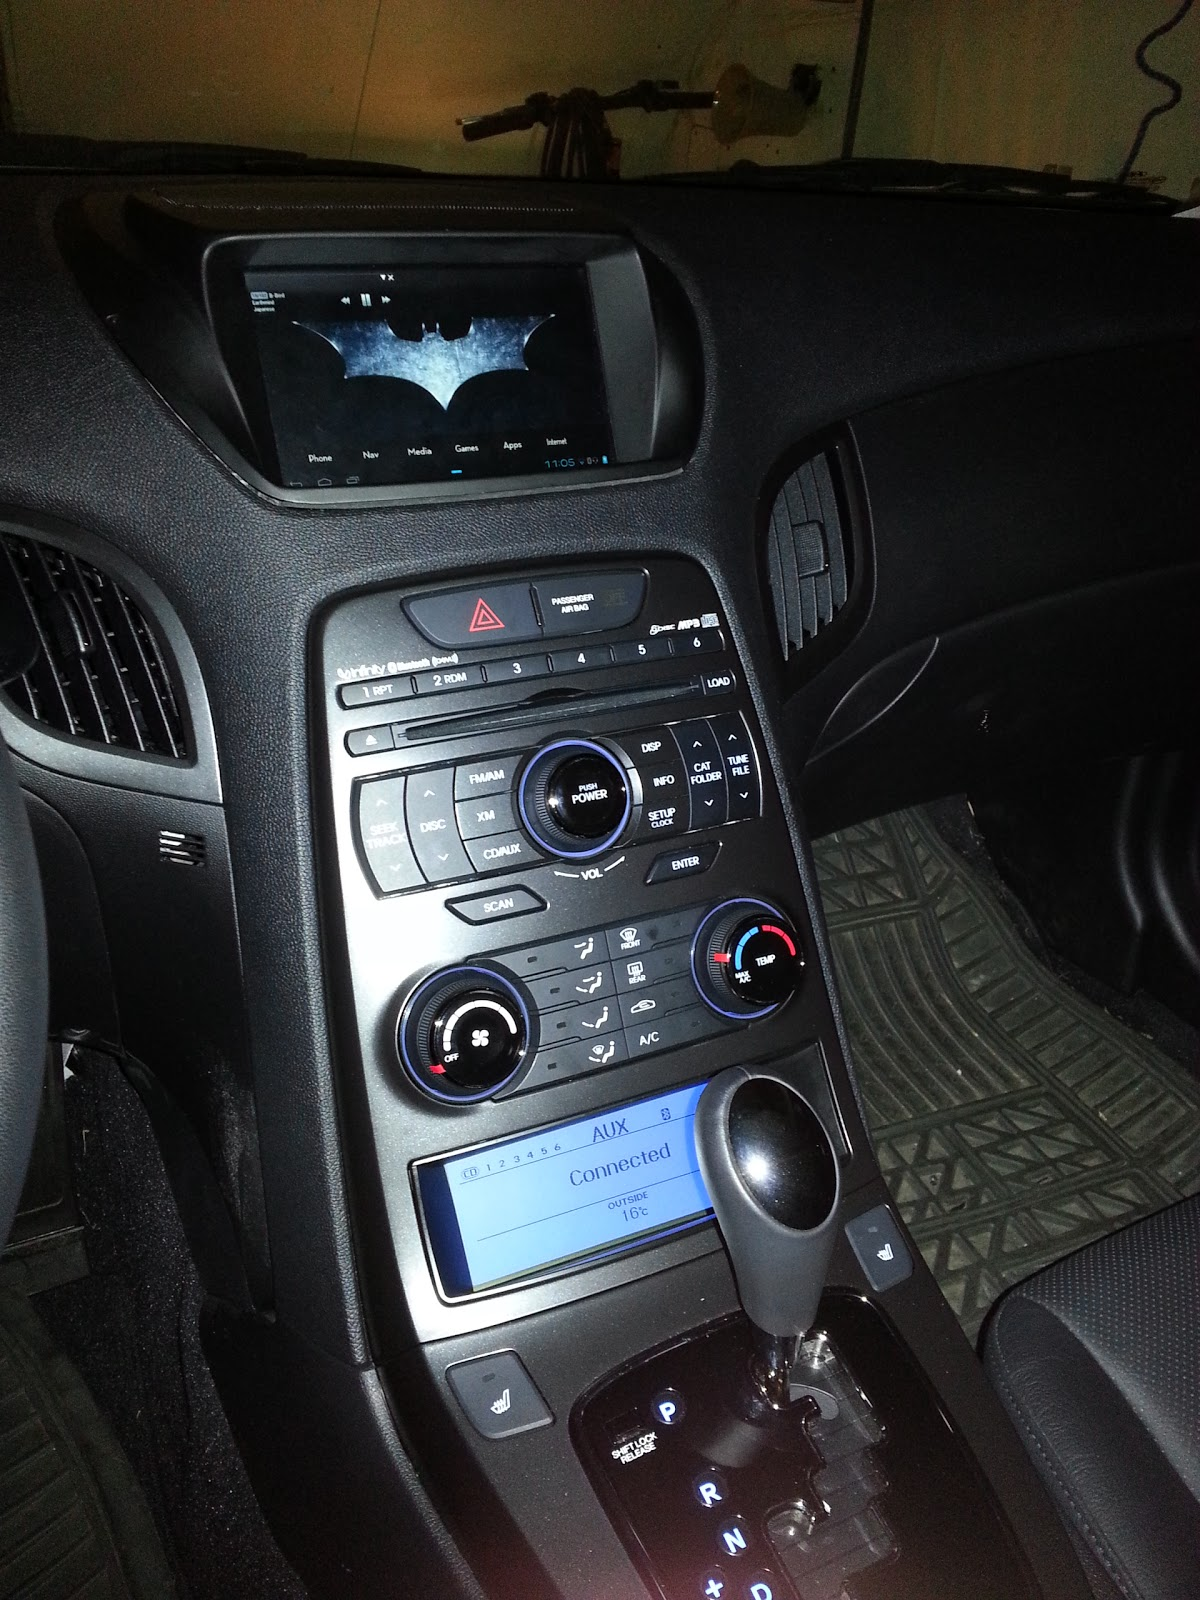 Dereks projects diy installing a tablet in a hyundai genesis coupe while the 20t version of the genesis coupe doesnt have built in nav there was a mount for a 7 inch gps or tablet designed to fit on the dash and make it keyboard keysfo Image collections